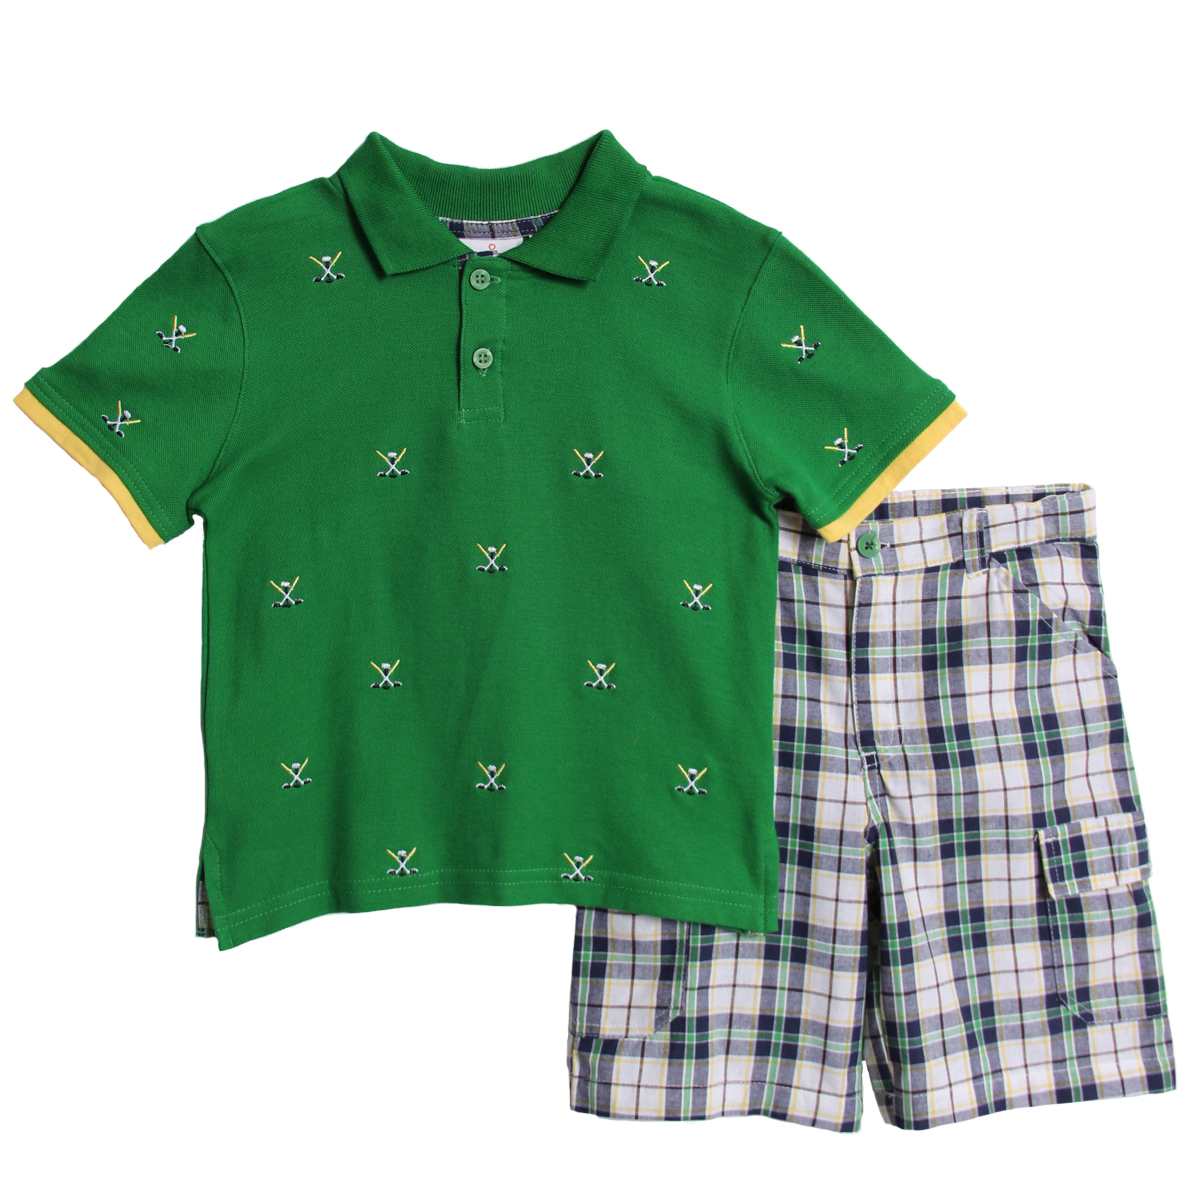 B. T. Kids Boys (4-7) 2 pc green golf polo shirt and plaid cargo shorts set at Sears.com